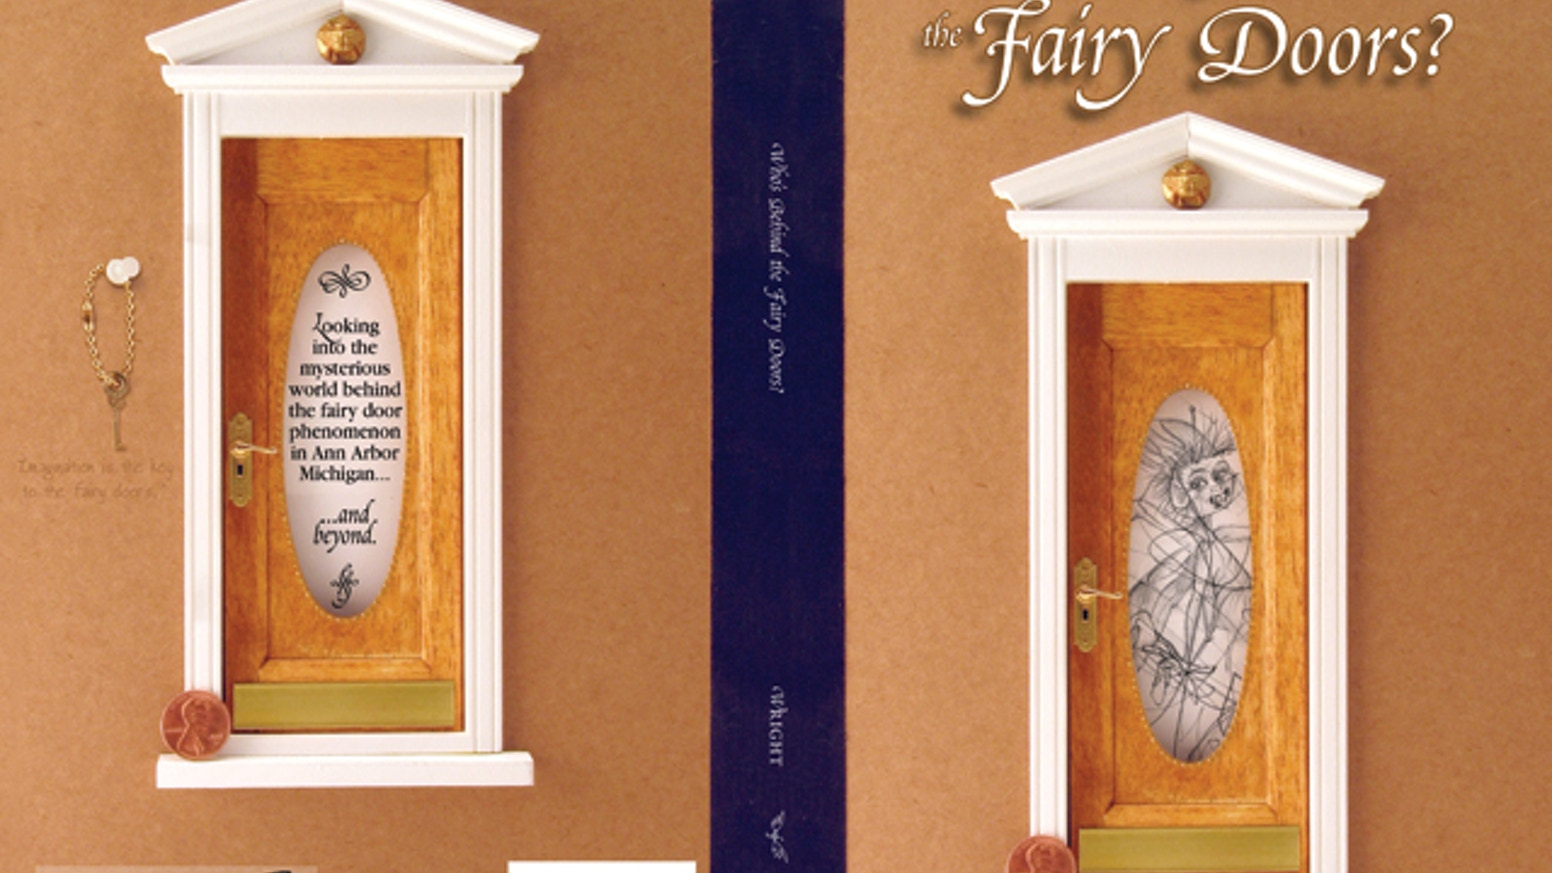 Quot Who S Behind The Fairy Doors Quot Revised Edition By